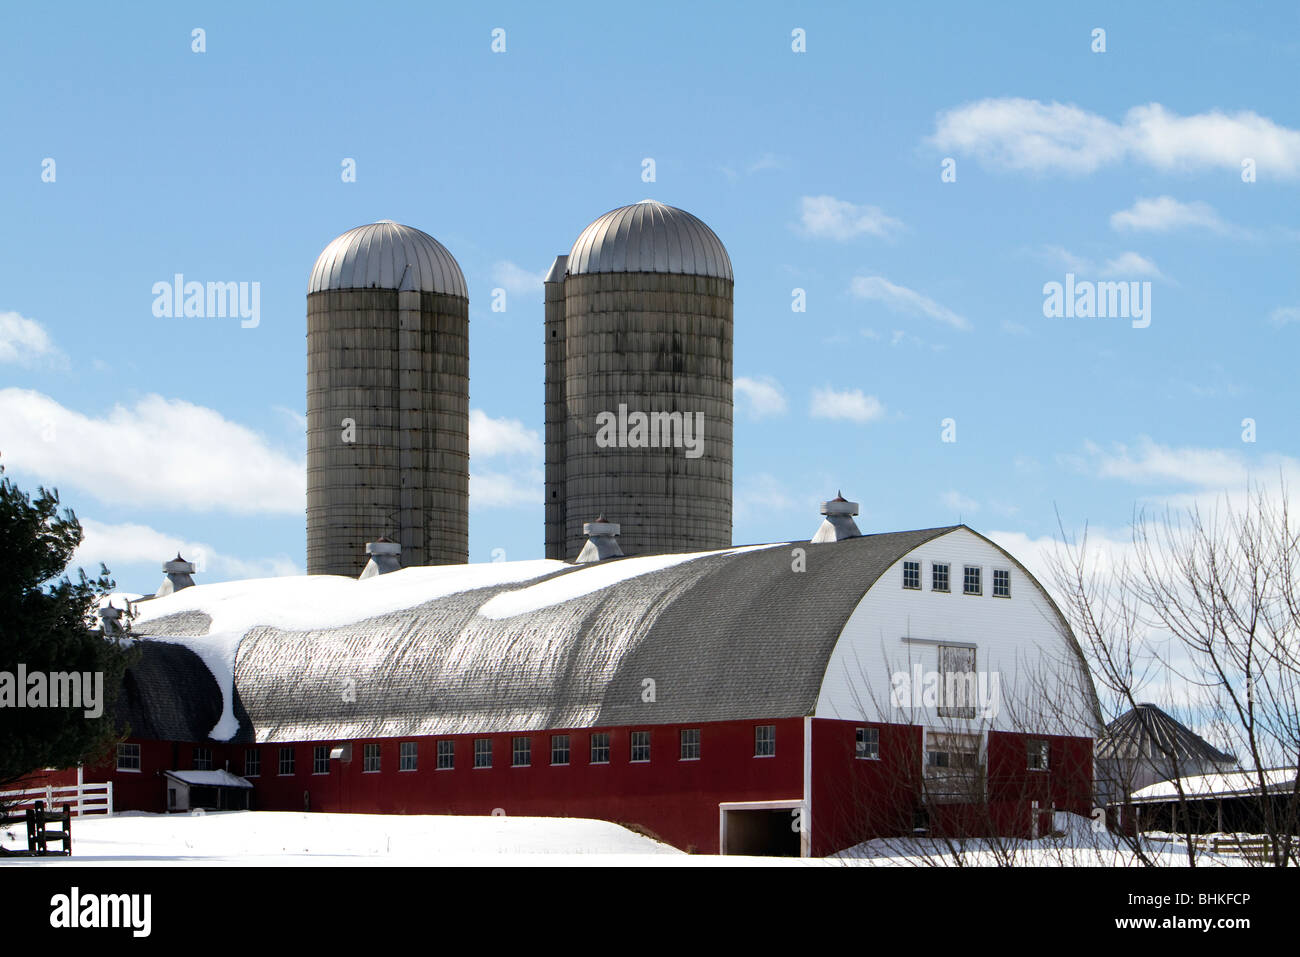 A Modern Dairy Barn With Two Silos Snow Covered Scene Beautiful Blue Sky